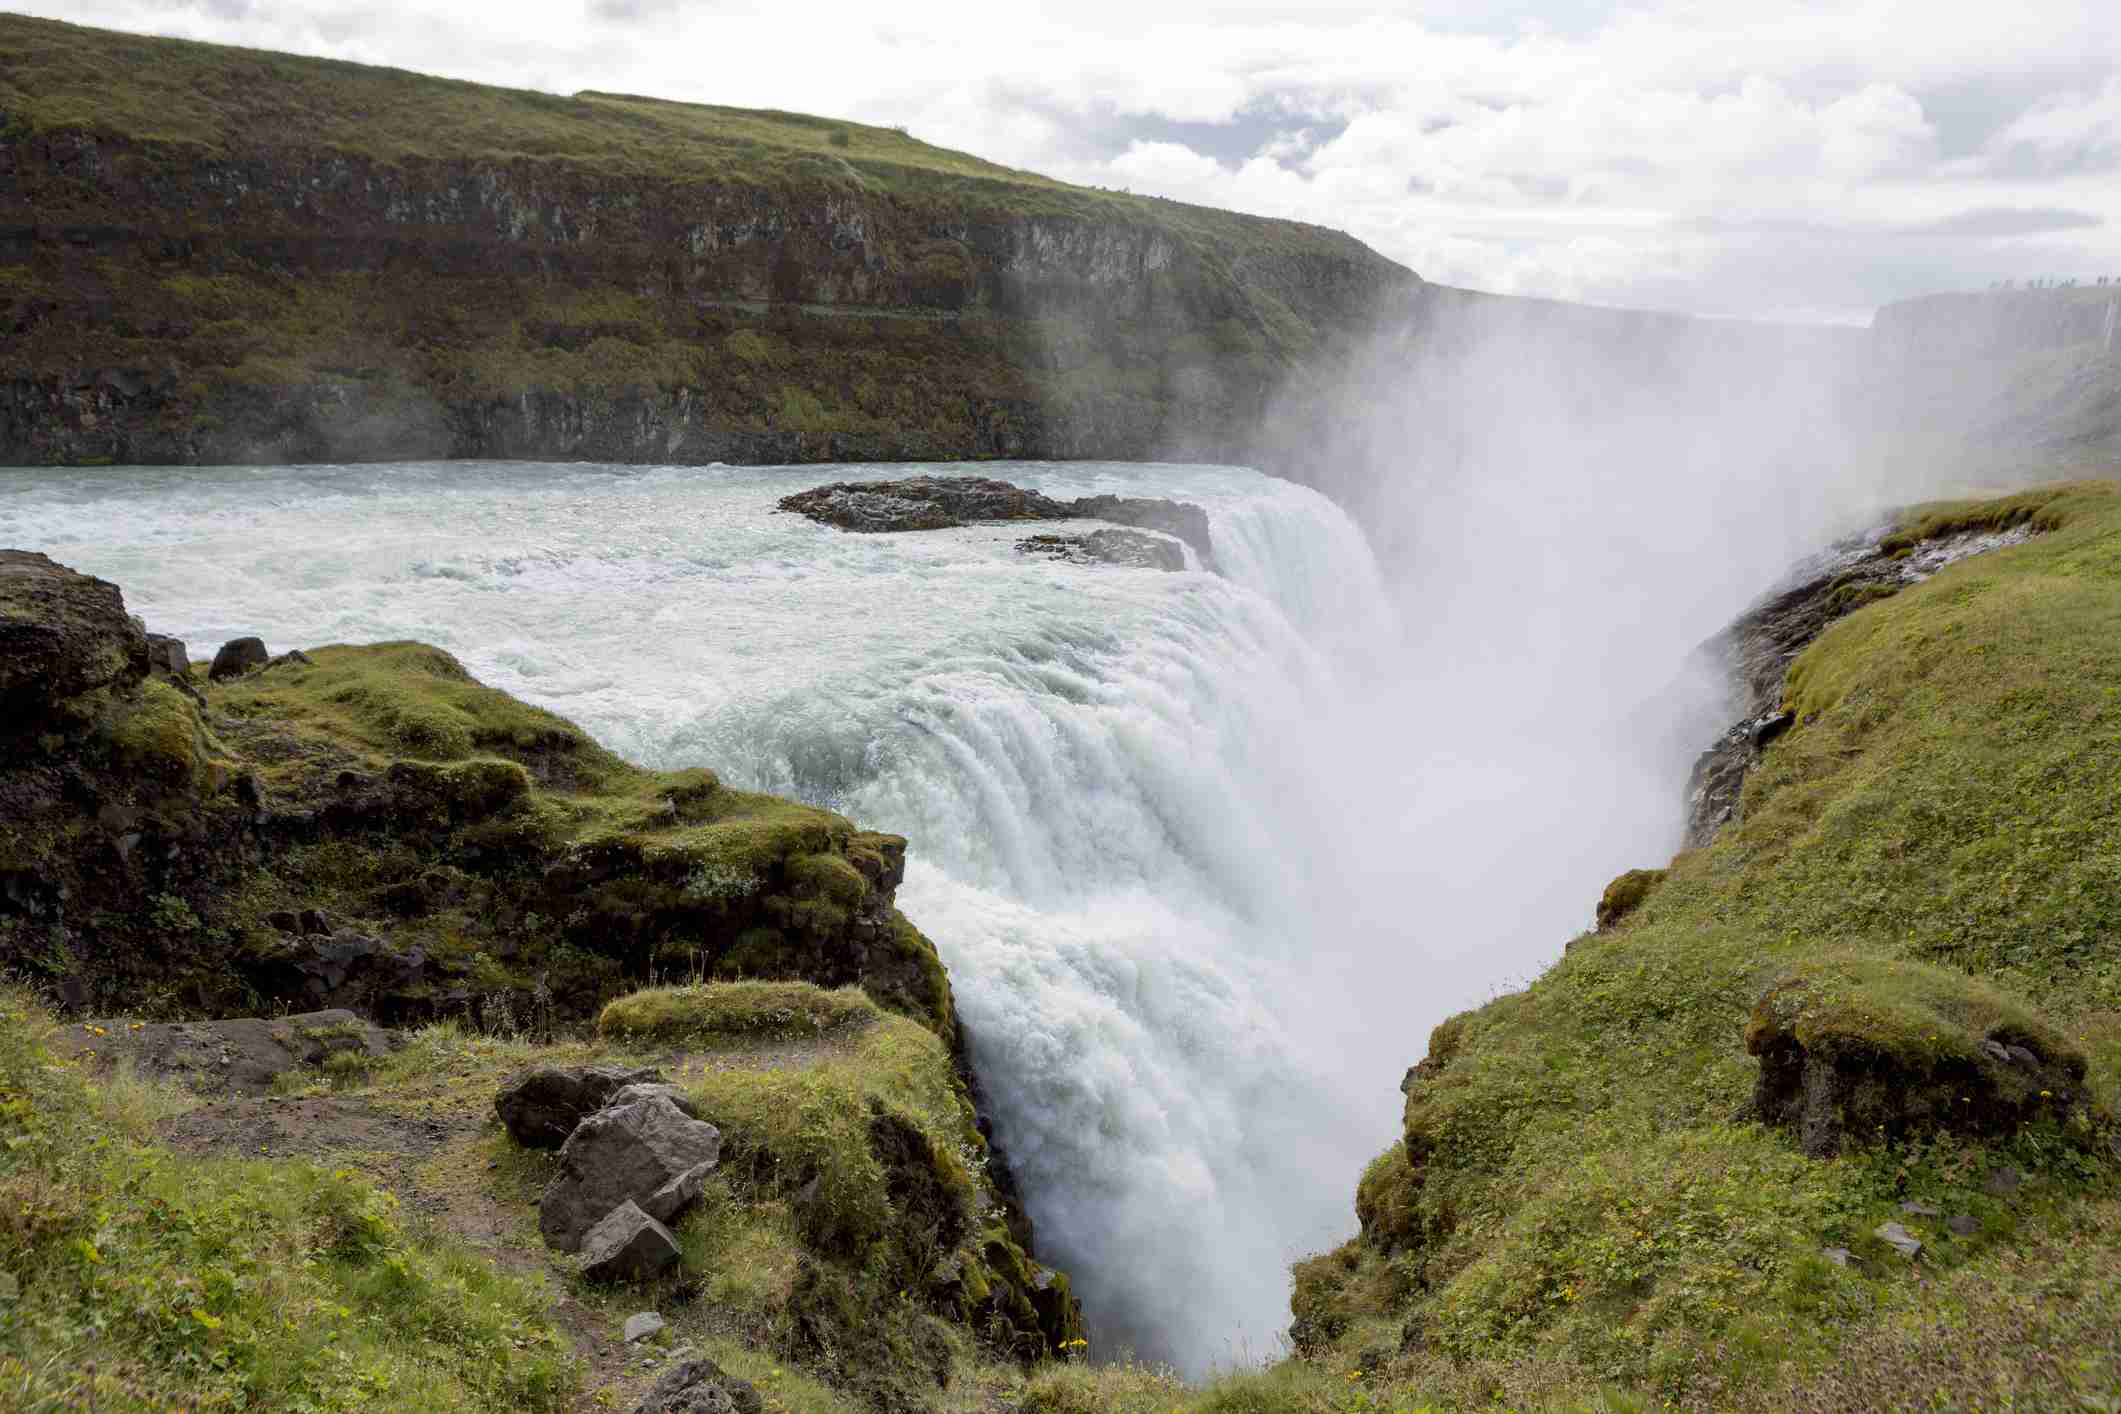 Iceland's rugged terrain and natural wilderness beauty. Gullfoss waterfall in Iceland is a internationally famous landmark, located on the Golden Circle.